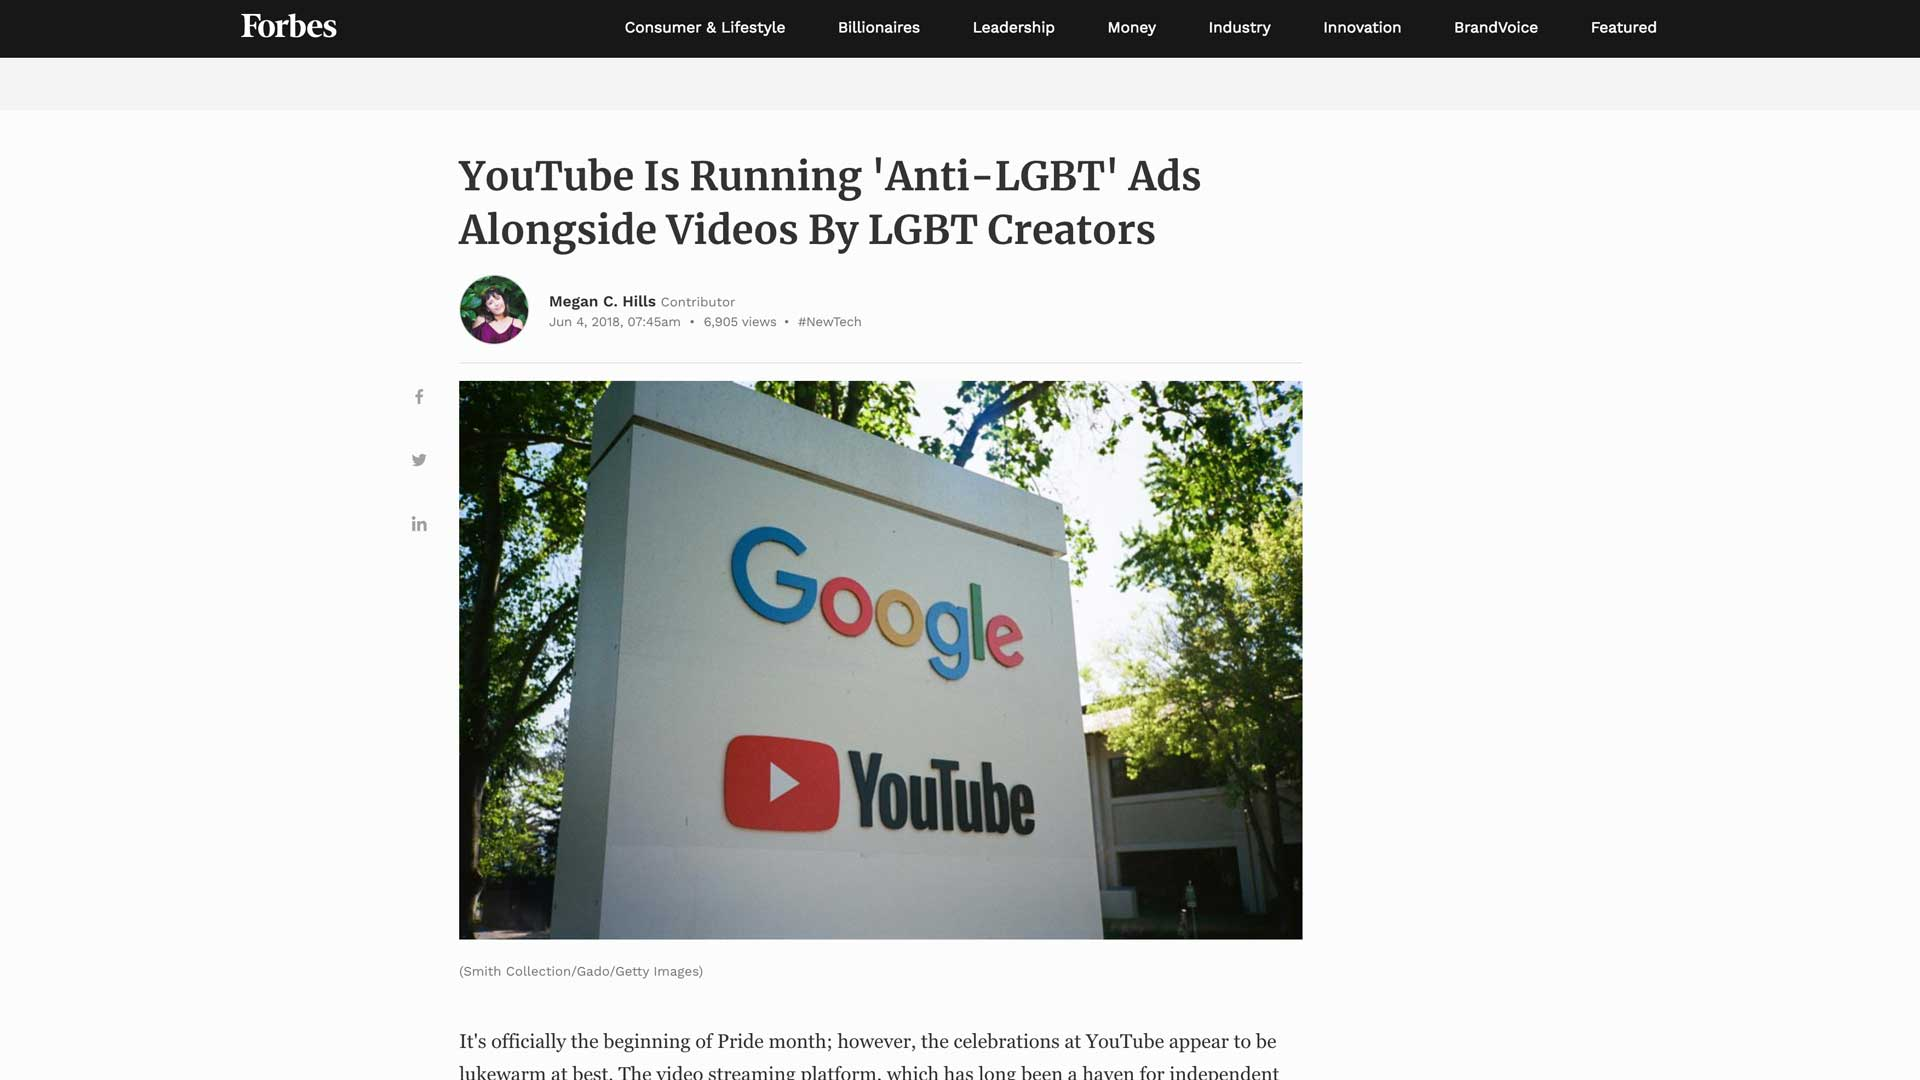 YouTube Accused of Homophobia for Advertising My Video